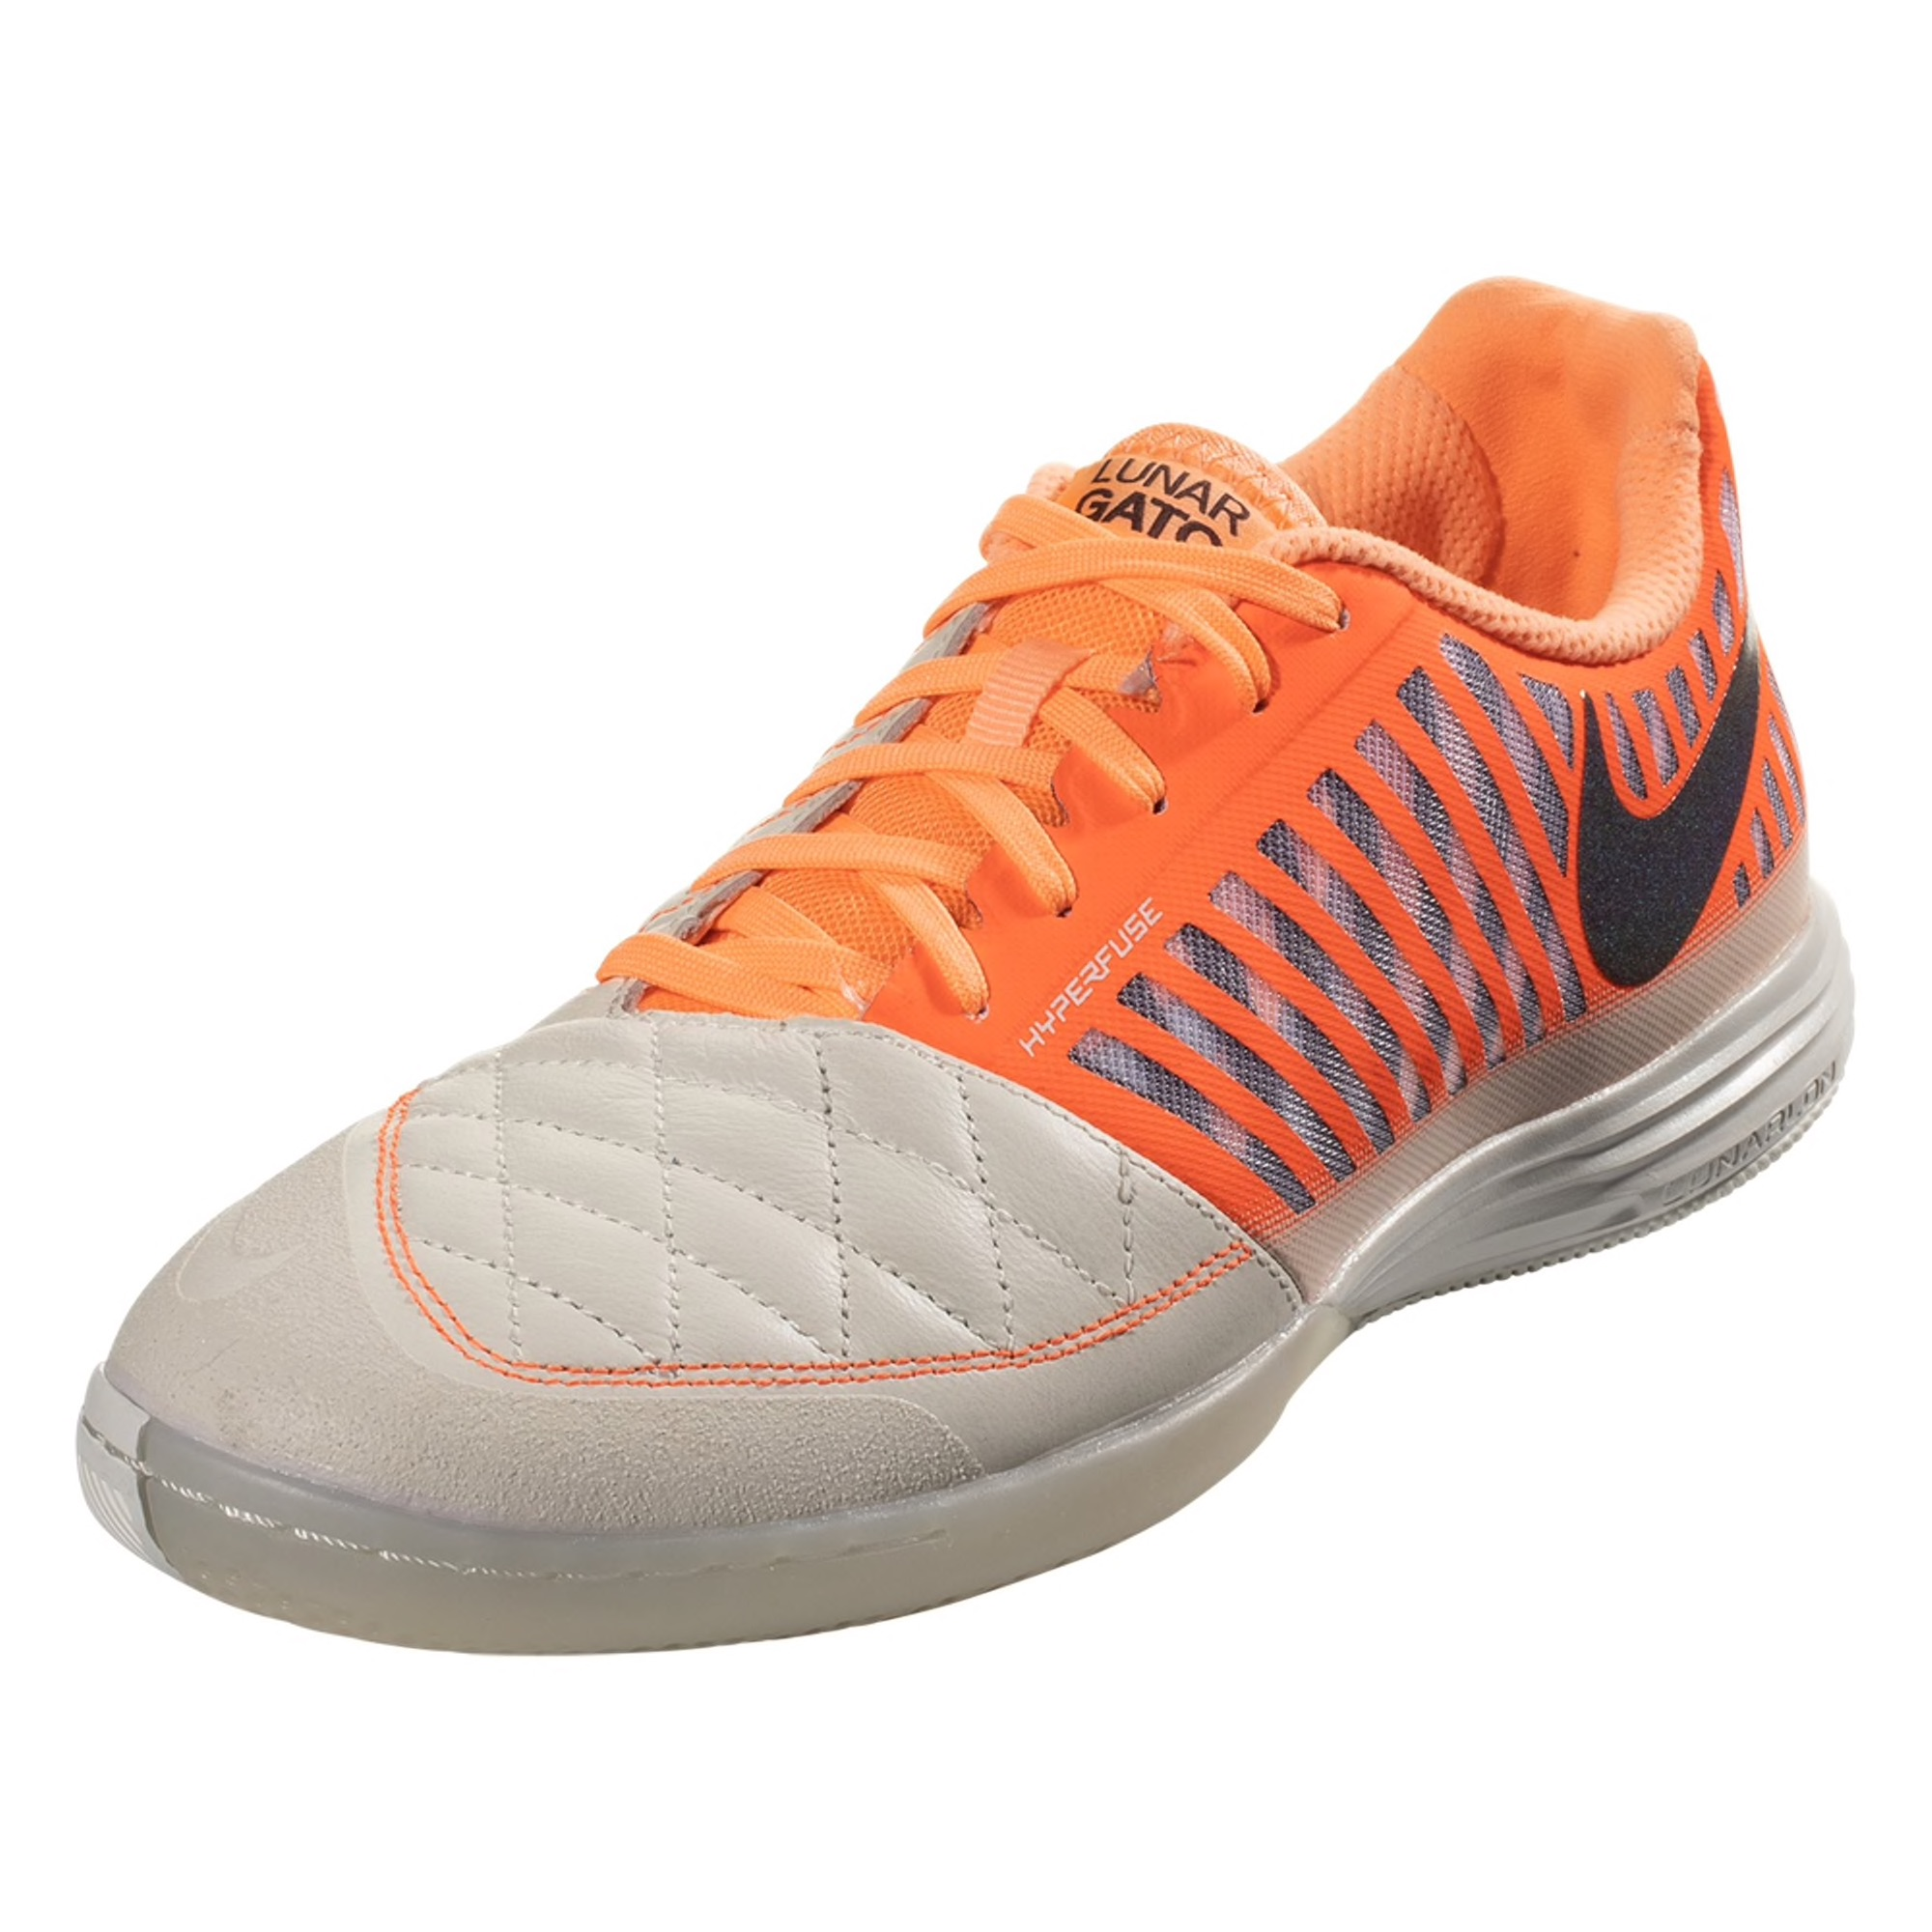 Nike Lunar Gato II Indoor Soccer Shoe - Cream / Orange